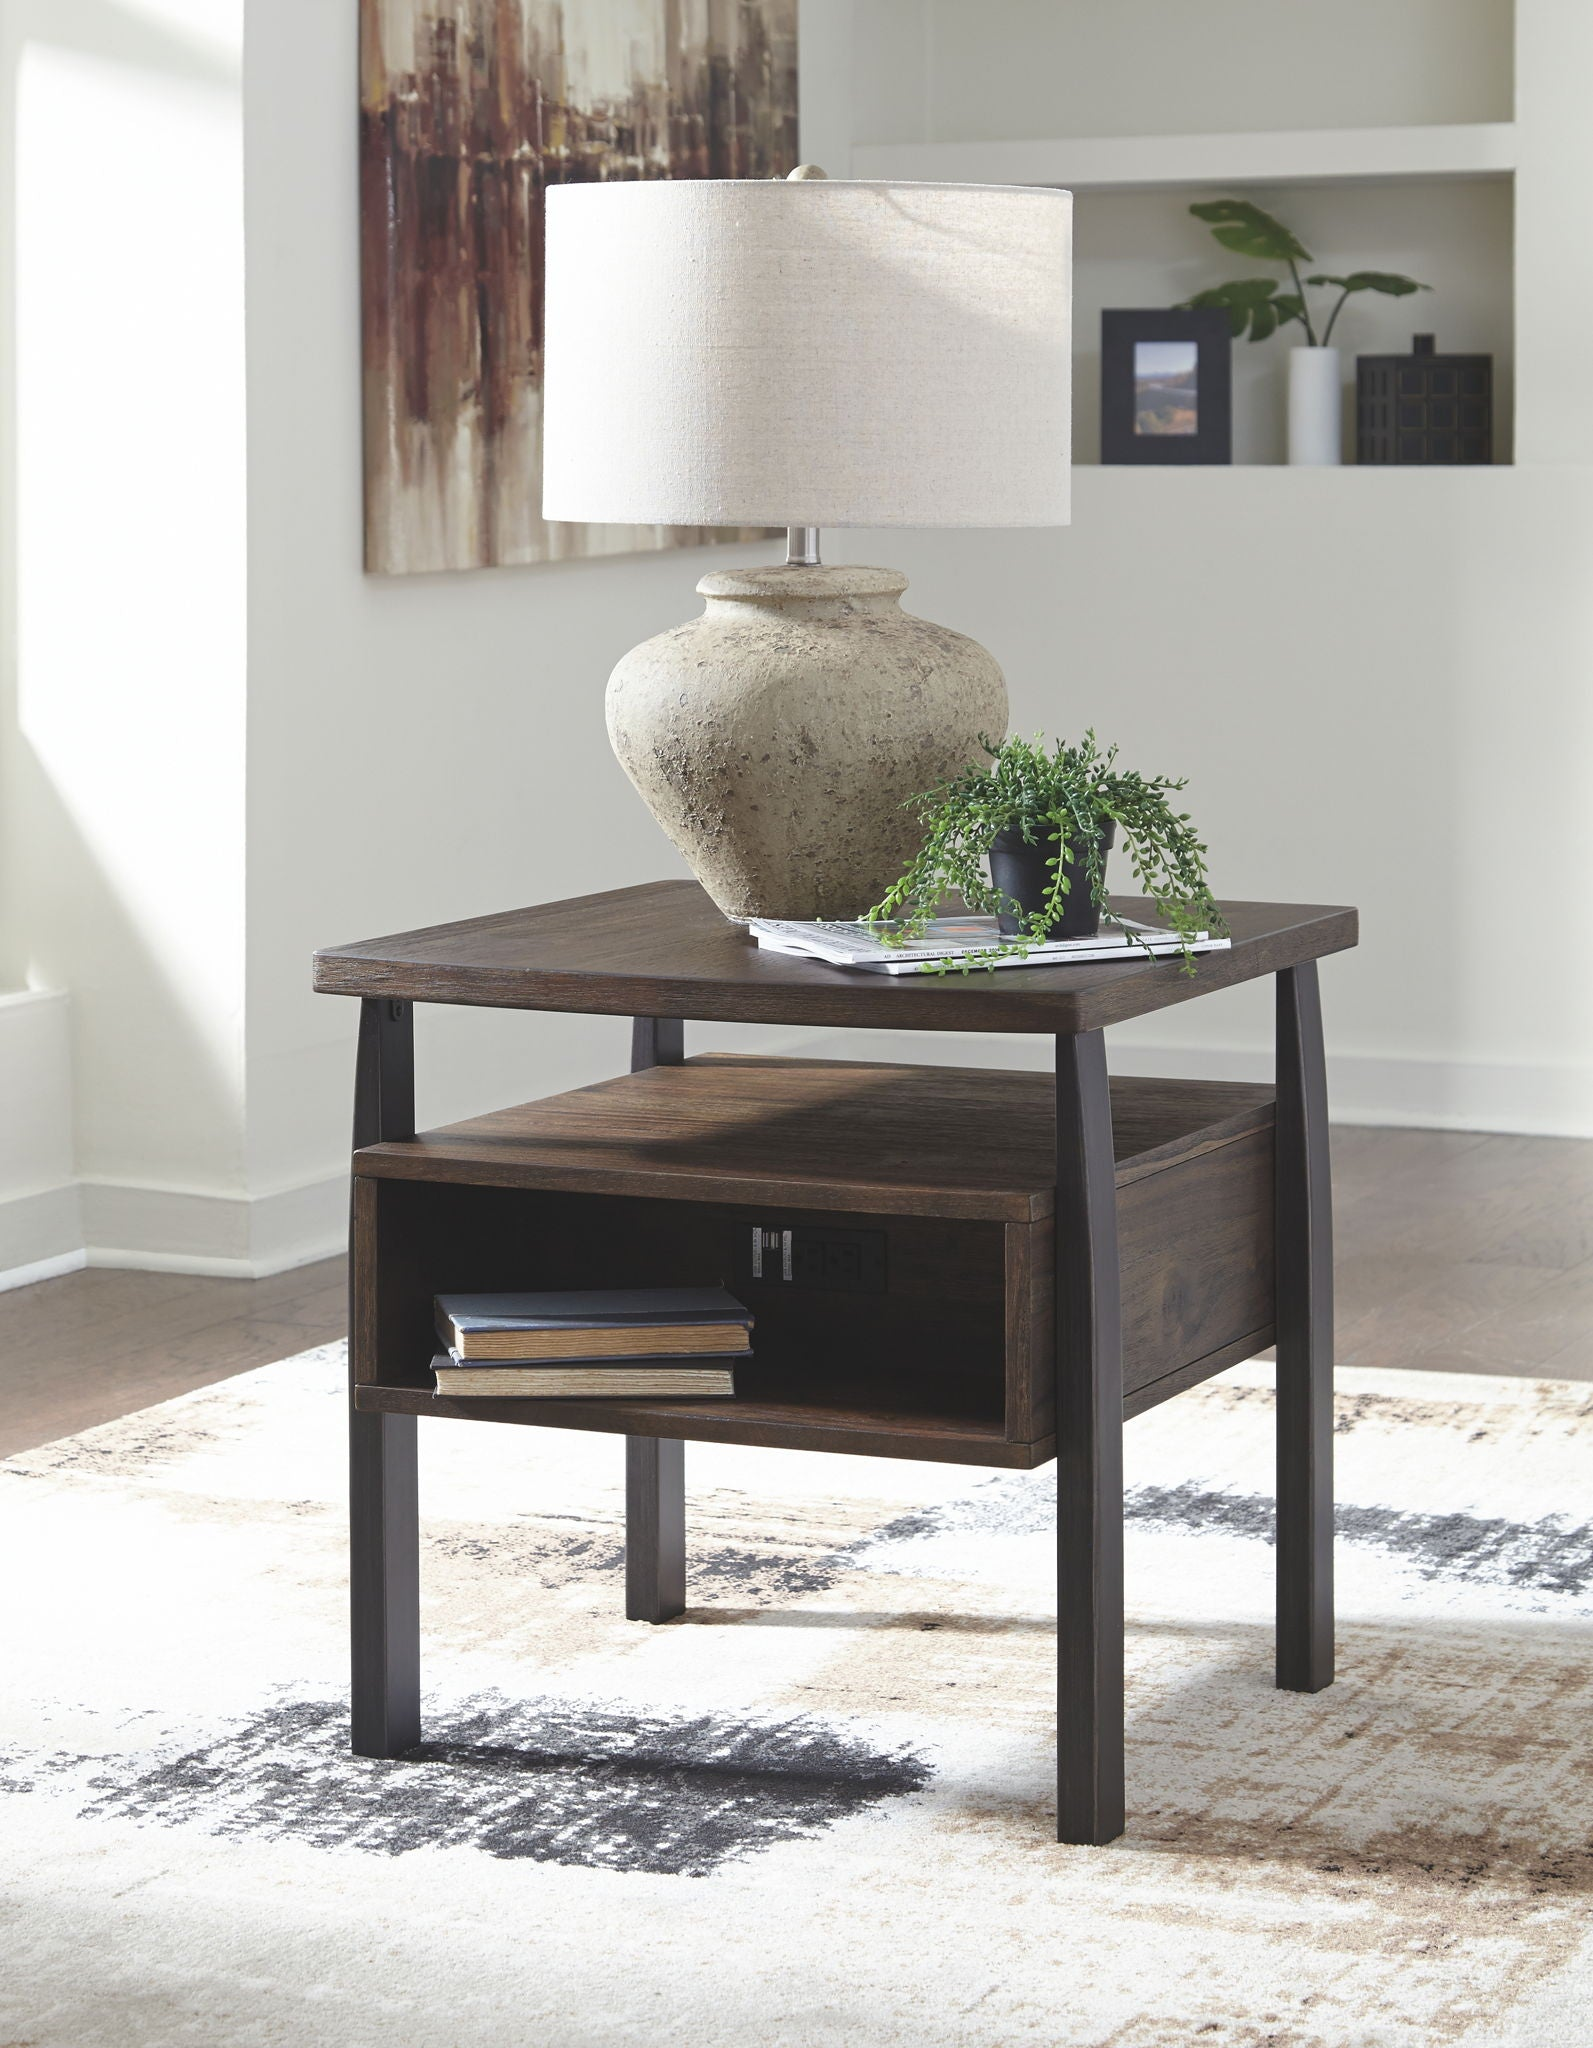 Vailbry End Table | Calgary's Furniture Store